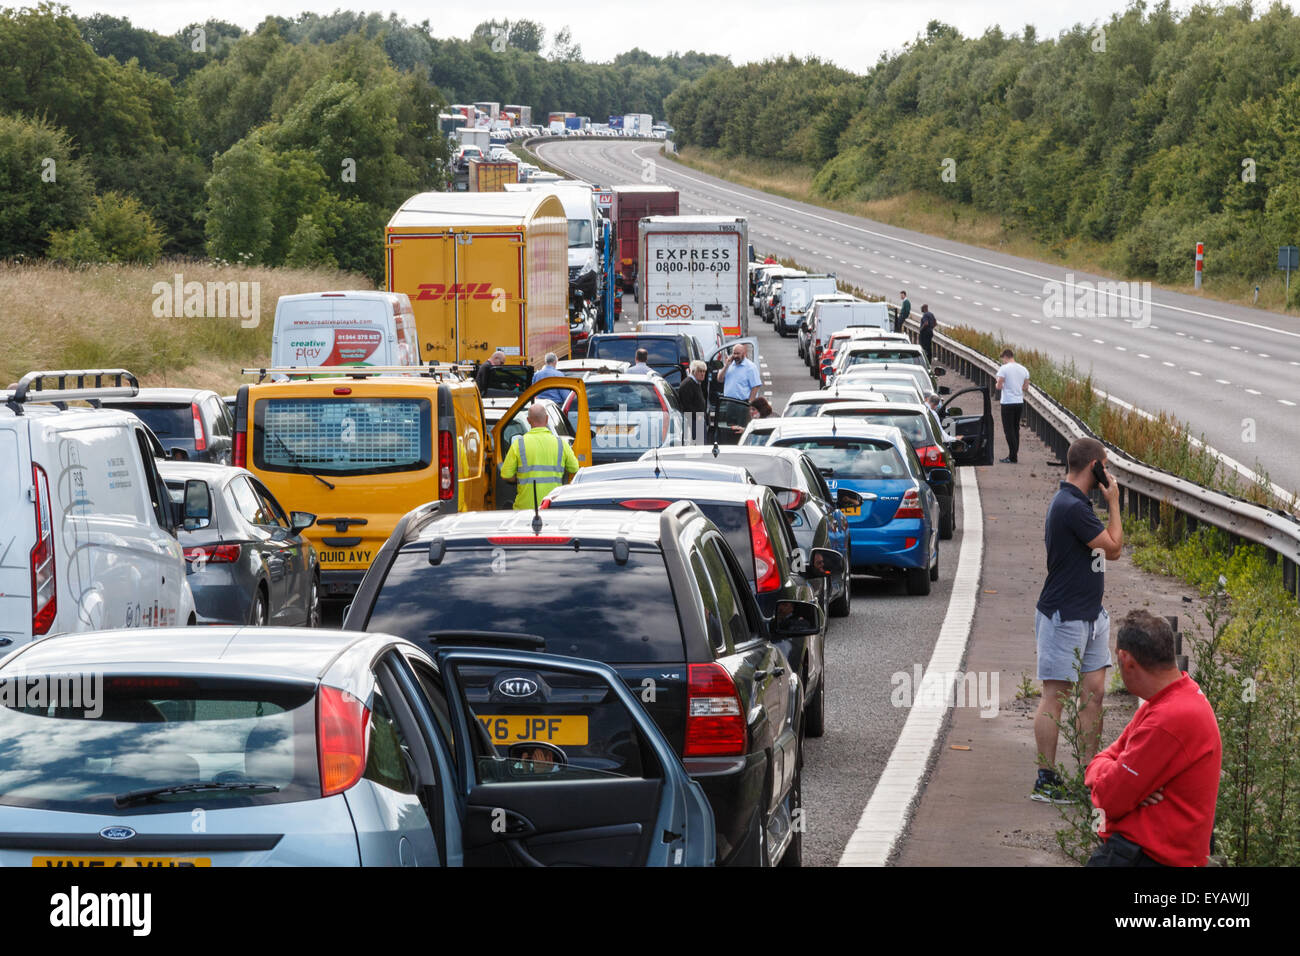 Traffic Jam with stationary traffic on a motorway in the UK  with people walking on the road - Stock Image